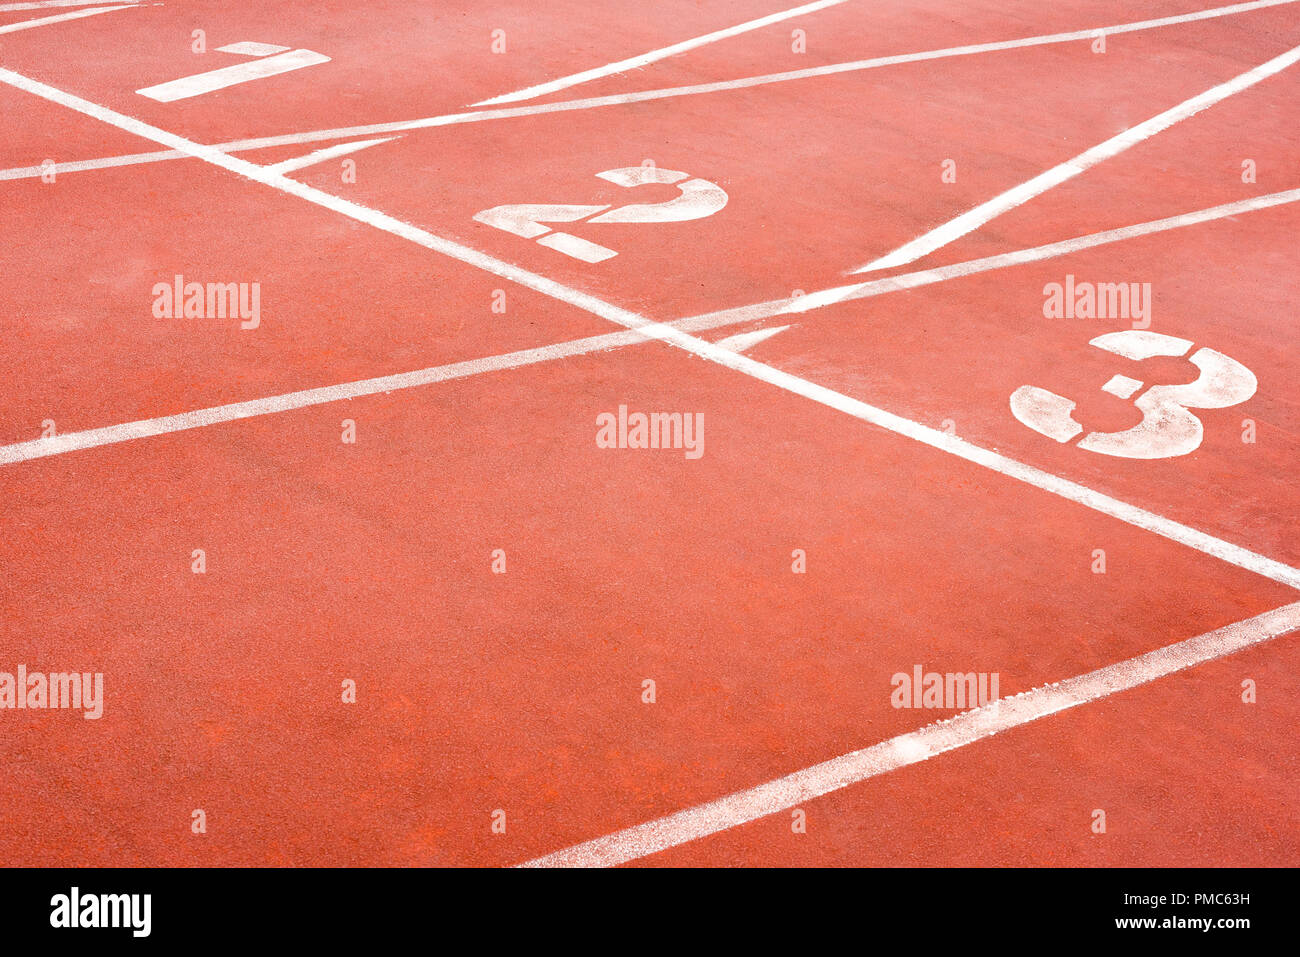 1 2 3 Orange athletic tracks close-up in a stadium - Stock Image